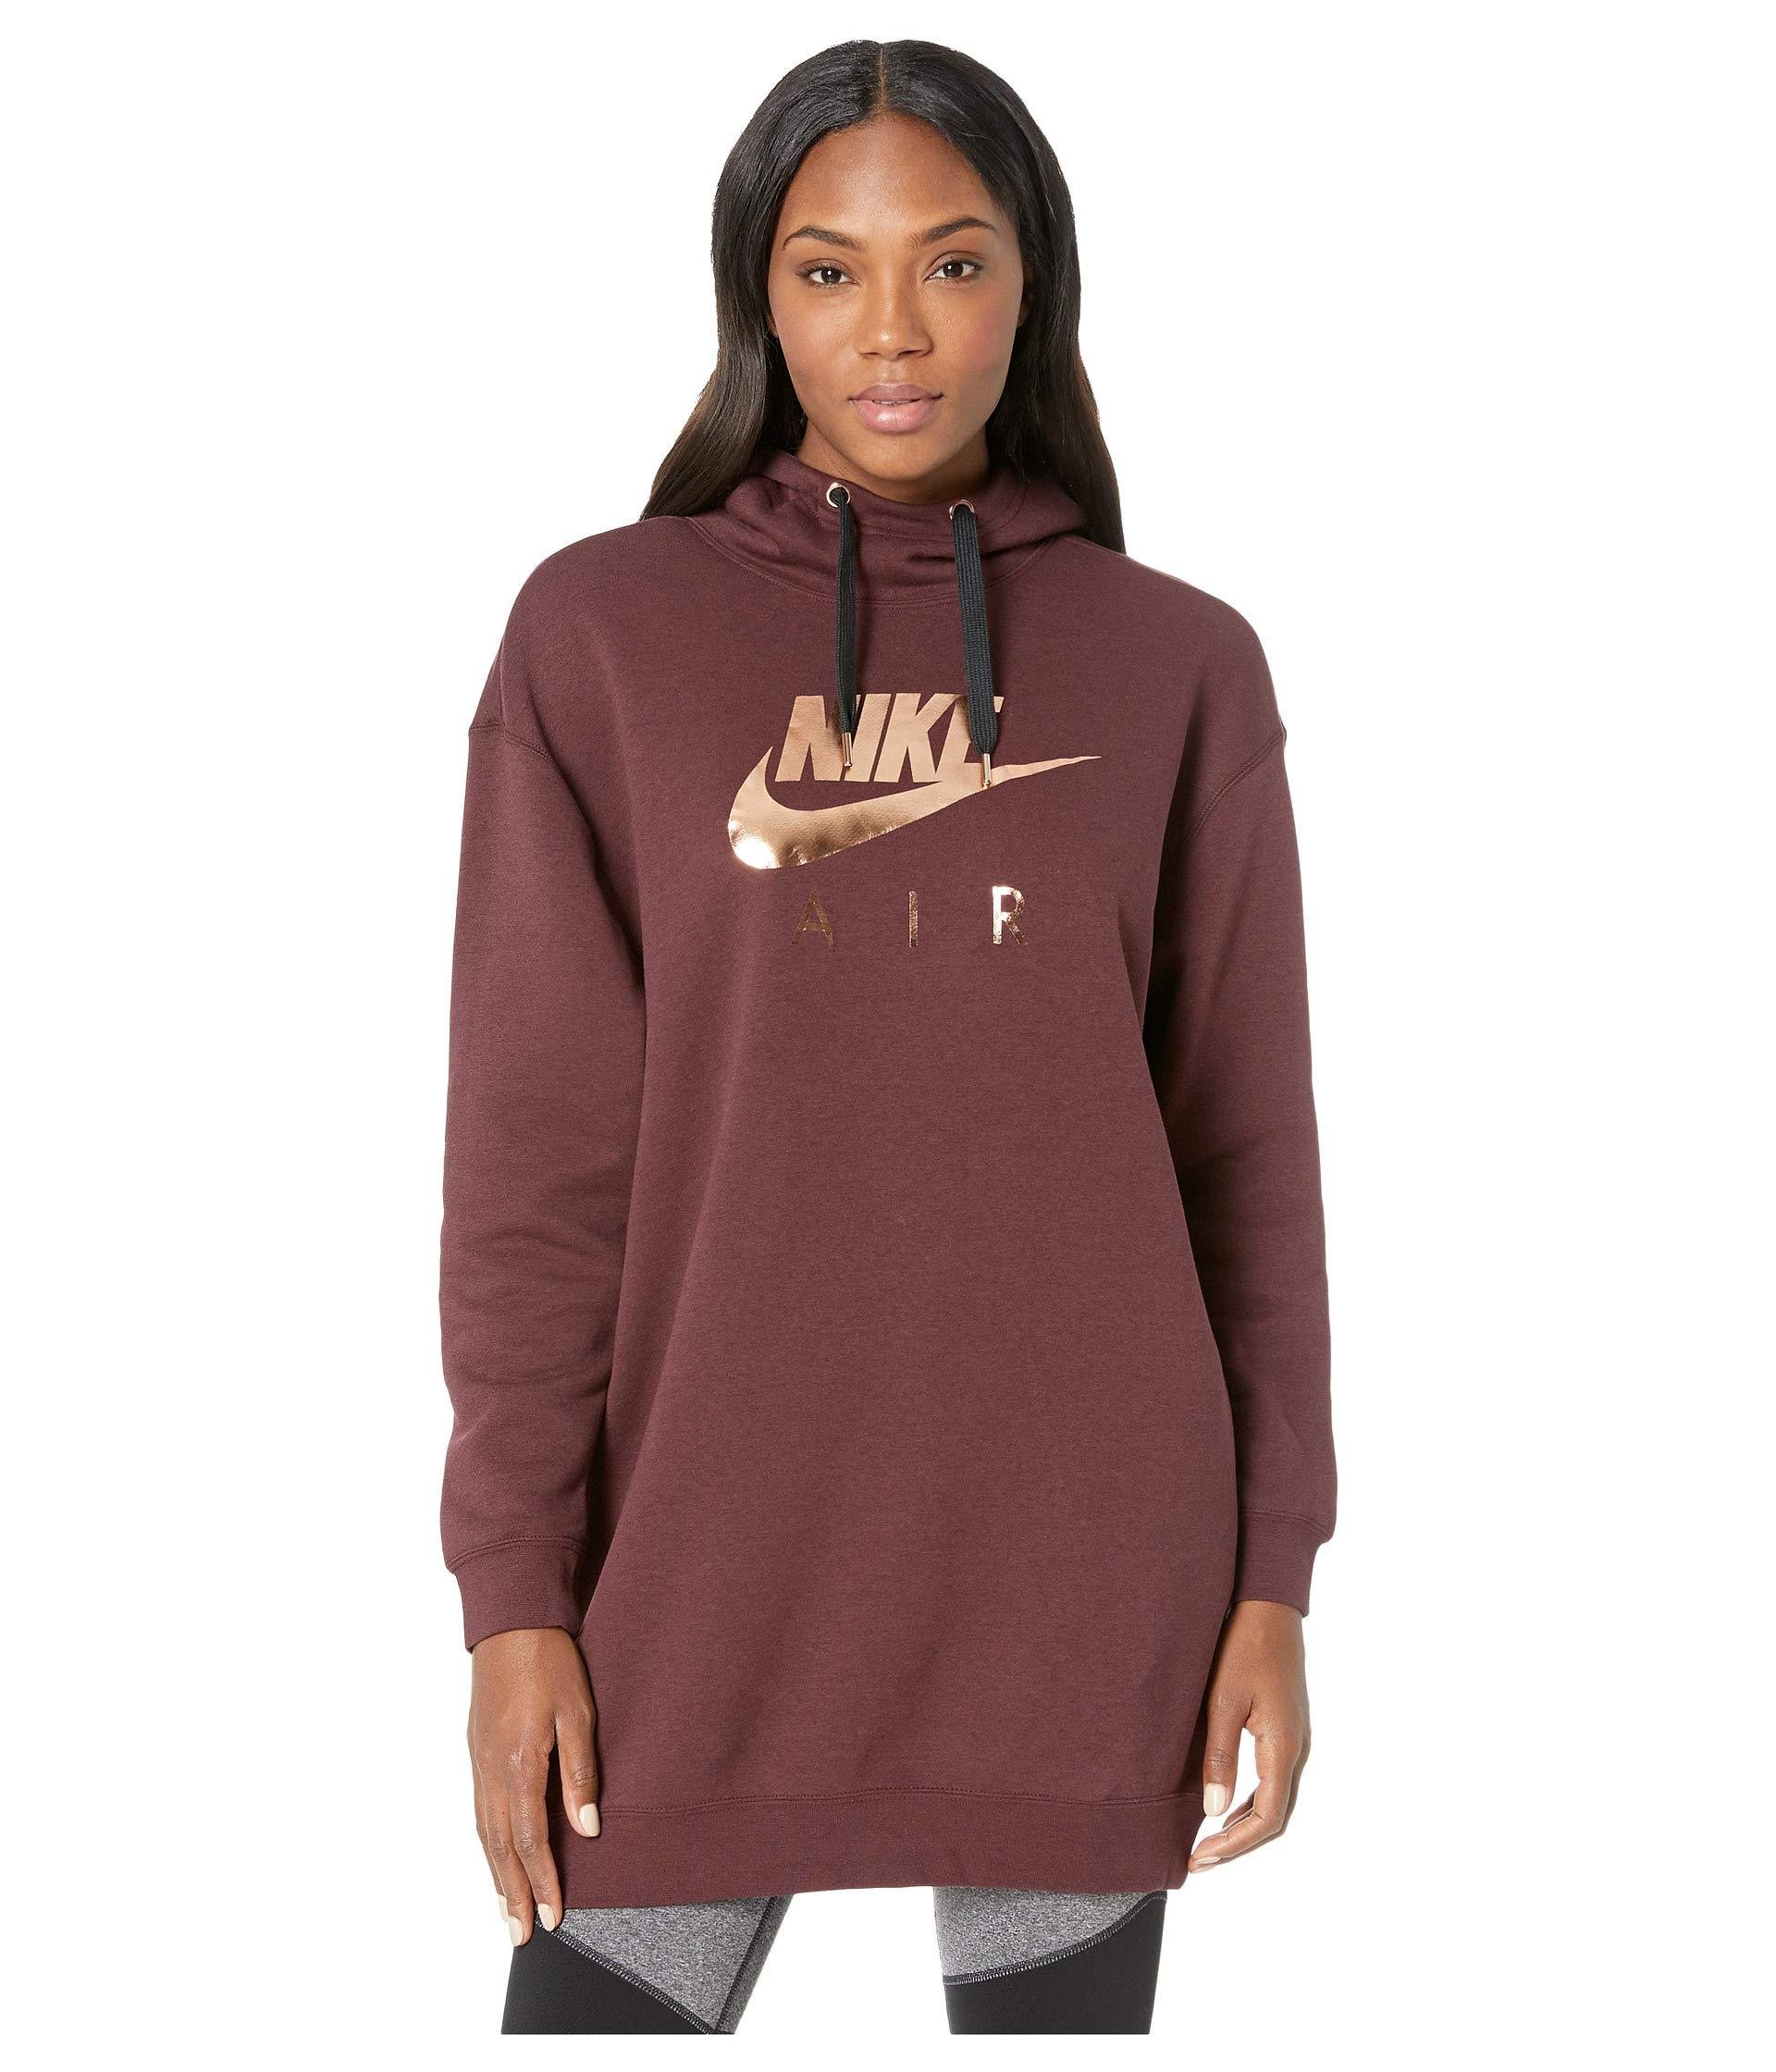 bb077d2a550c6 Lyst - Nike Sportswear Air Hoodie Oversize in Red - Save 25%